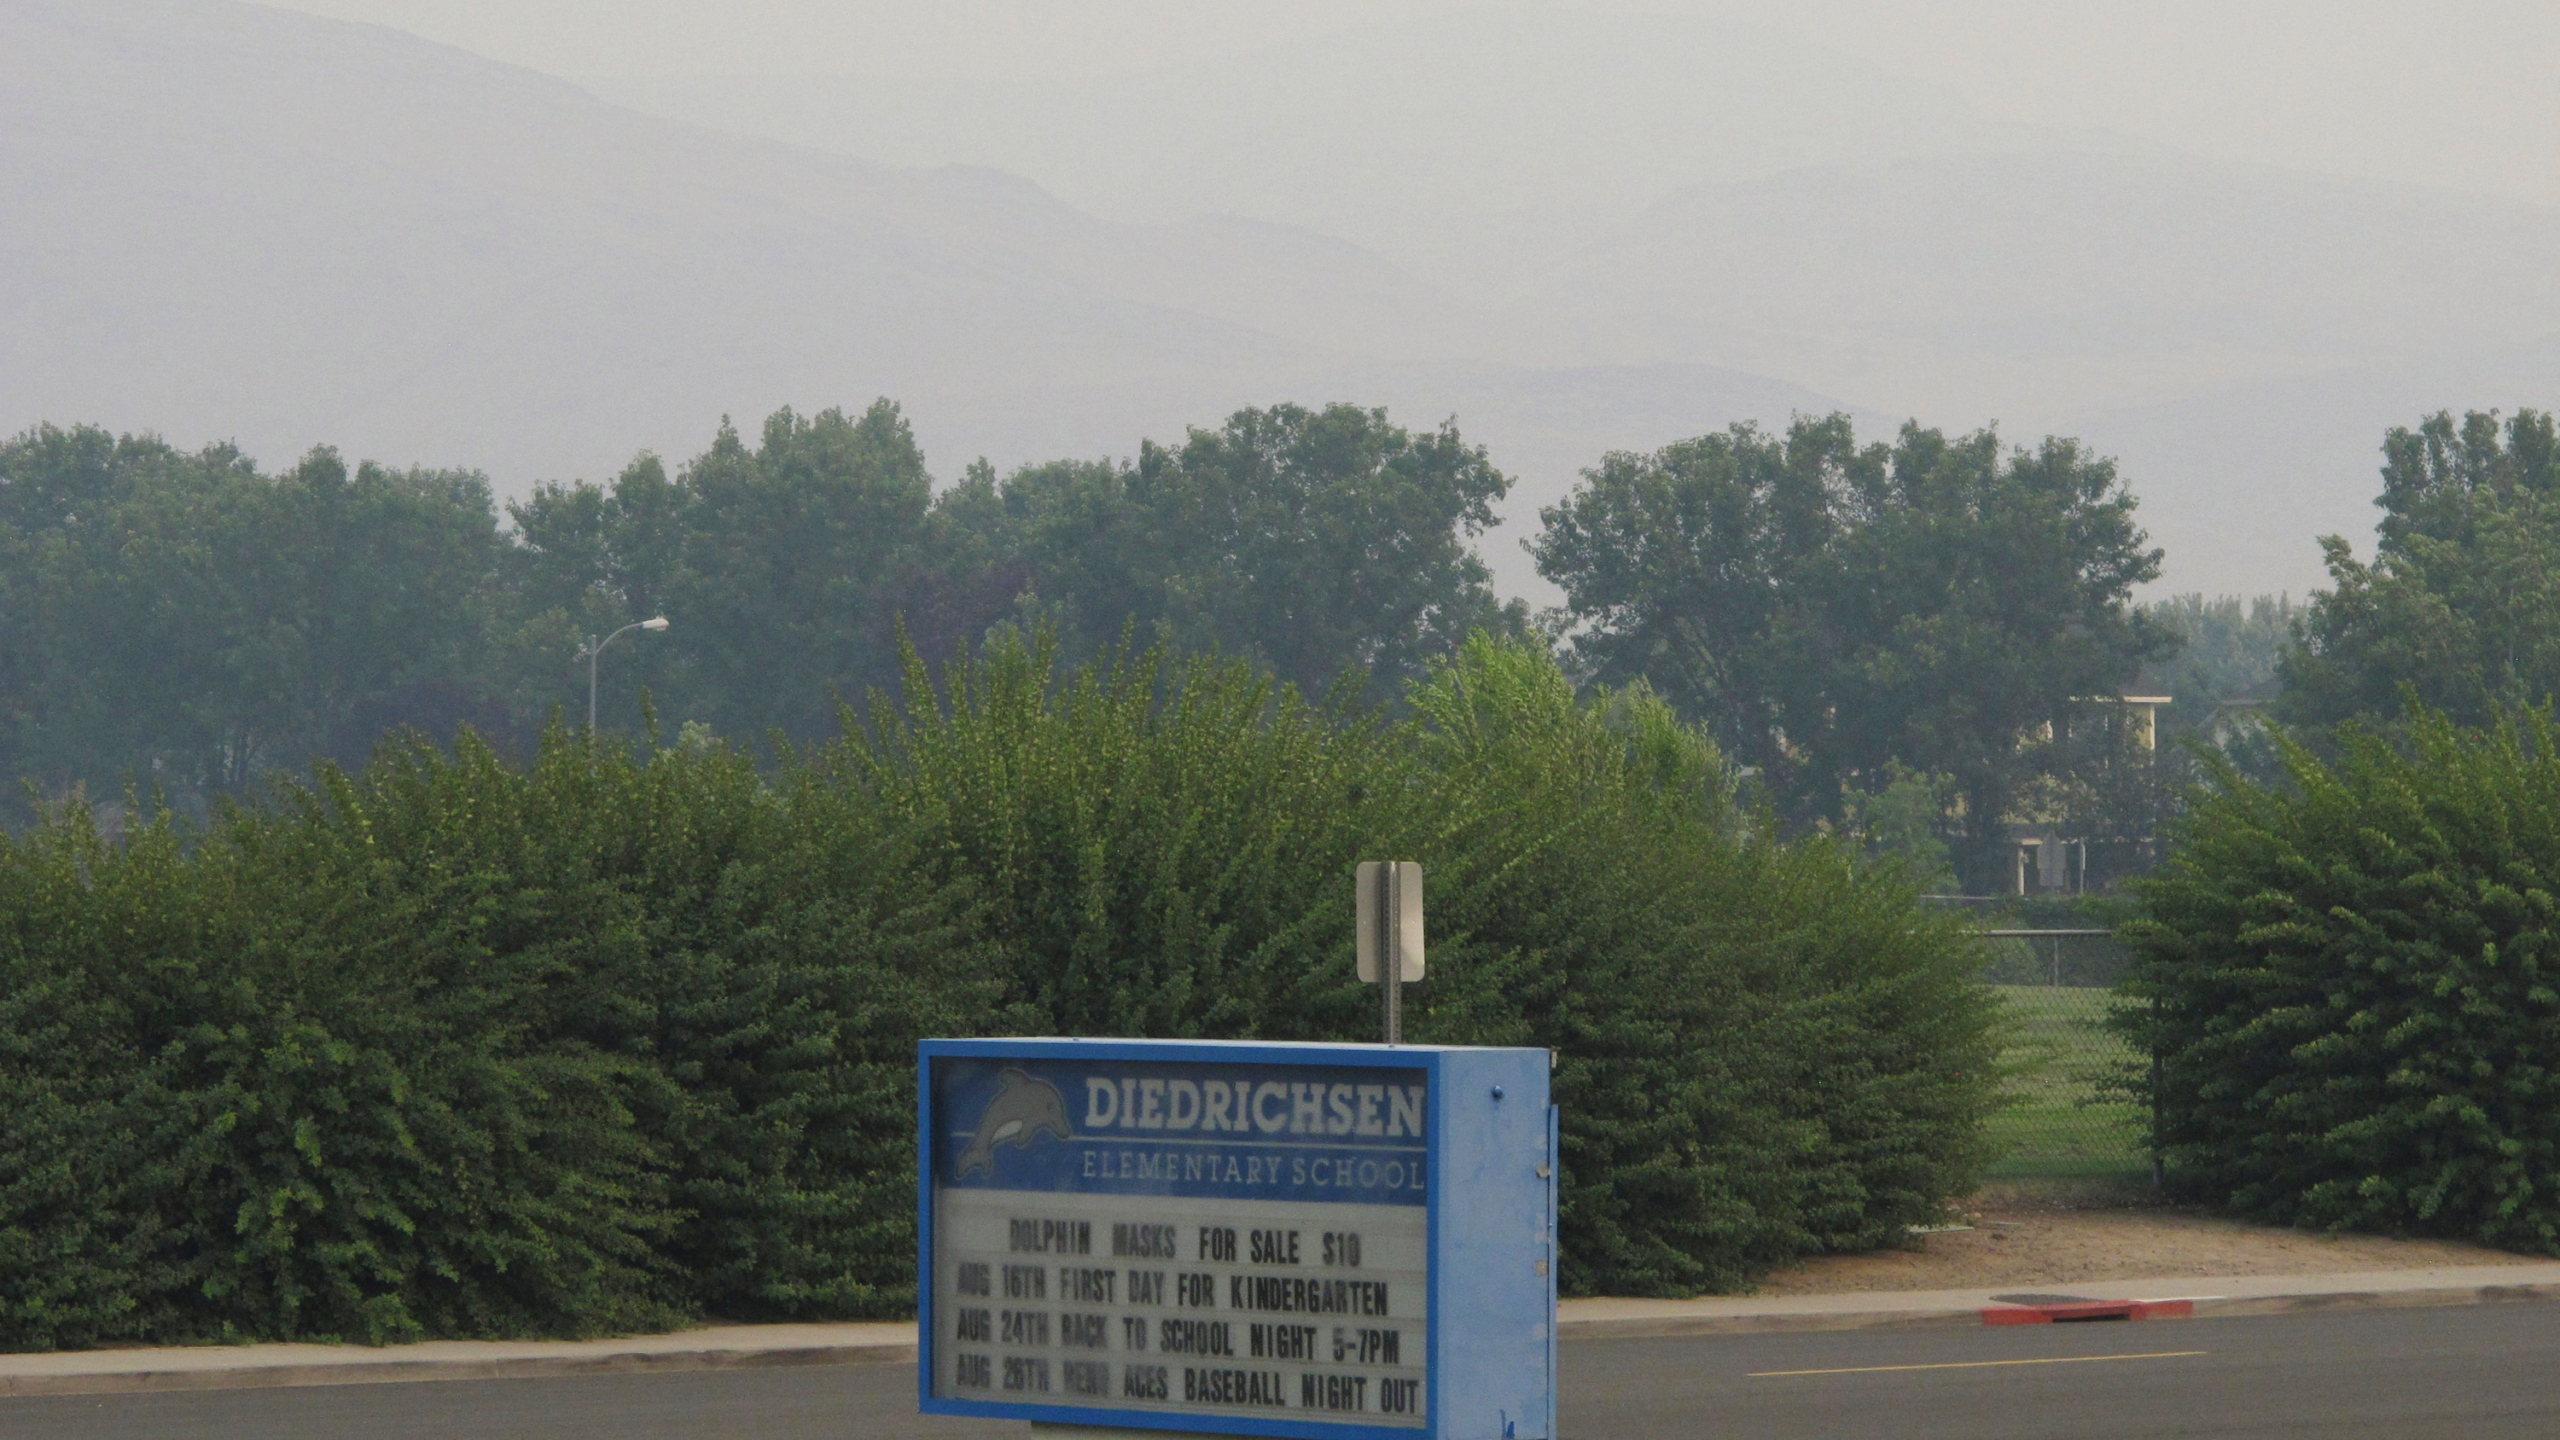 """Smoke from wildfires in California obscures the Pah Hah Range, Monday, Aug. 23, 2021, about 1 mile east of Diedrichsen Elementary School in Sparks, Nev., which was closed due to hazardous air quality. The Washoe County School District closed all schools including in Reno, Sparks and parts of Lake Tahoe on Monday due to the health hazard. The county health district also urged the general public to """"stay inside as much as possible"""" due to conditions expected to continue through Wednesday. (AP Photo/Scott Sonner)"""